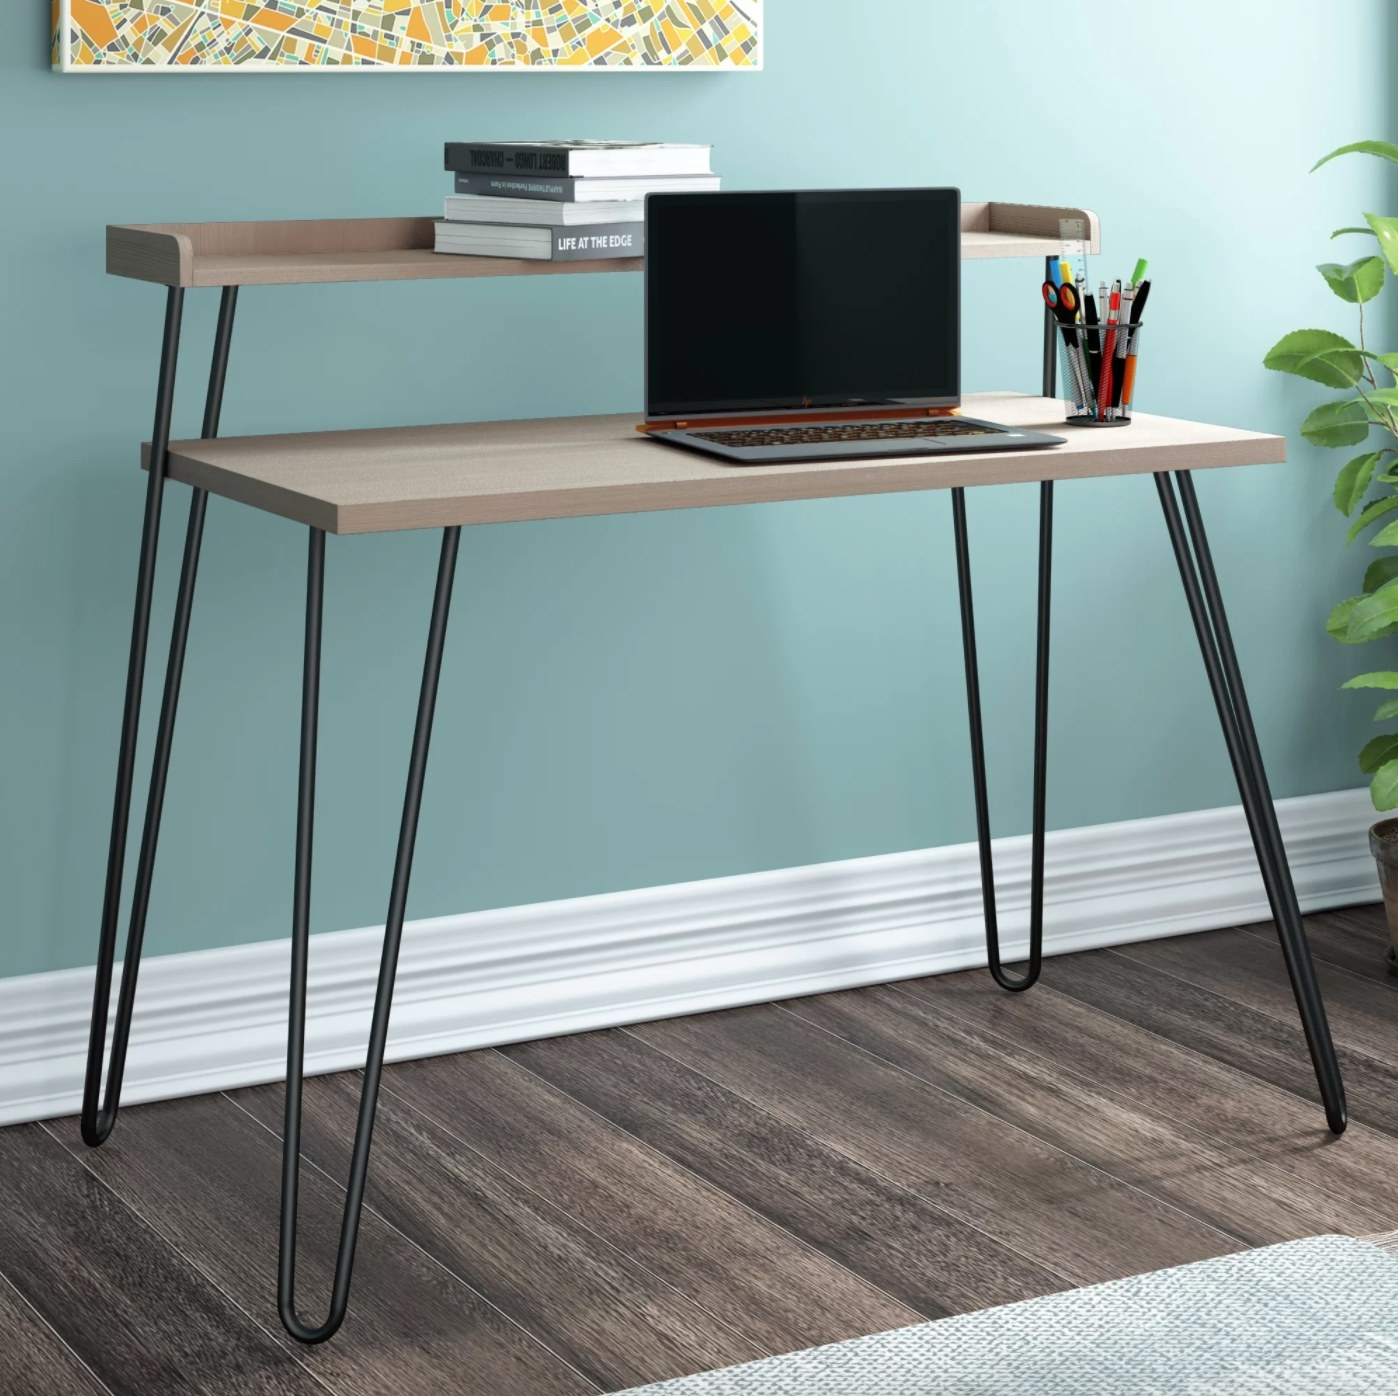 The two-tier wood desk with metal hairpin legs in sonoma oak/ black